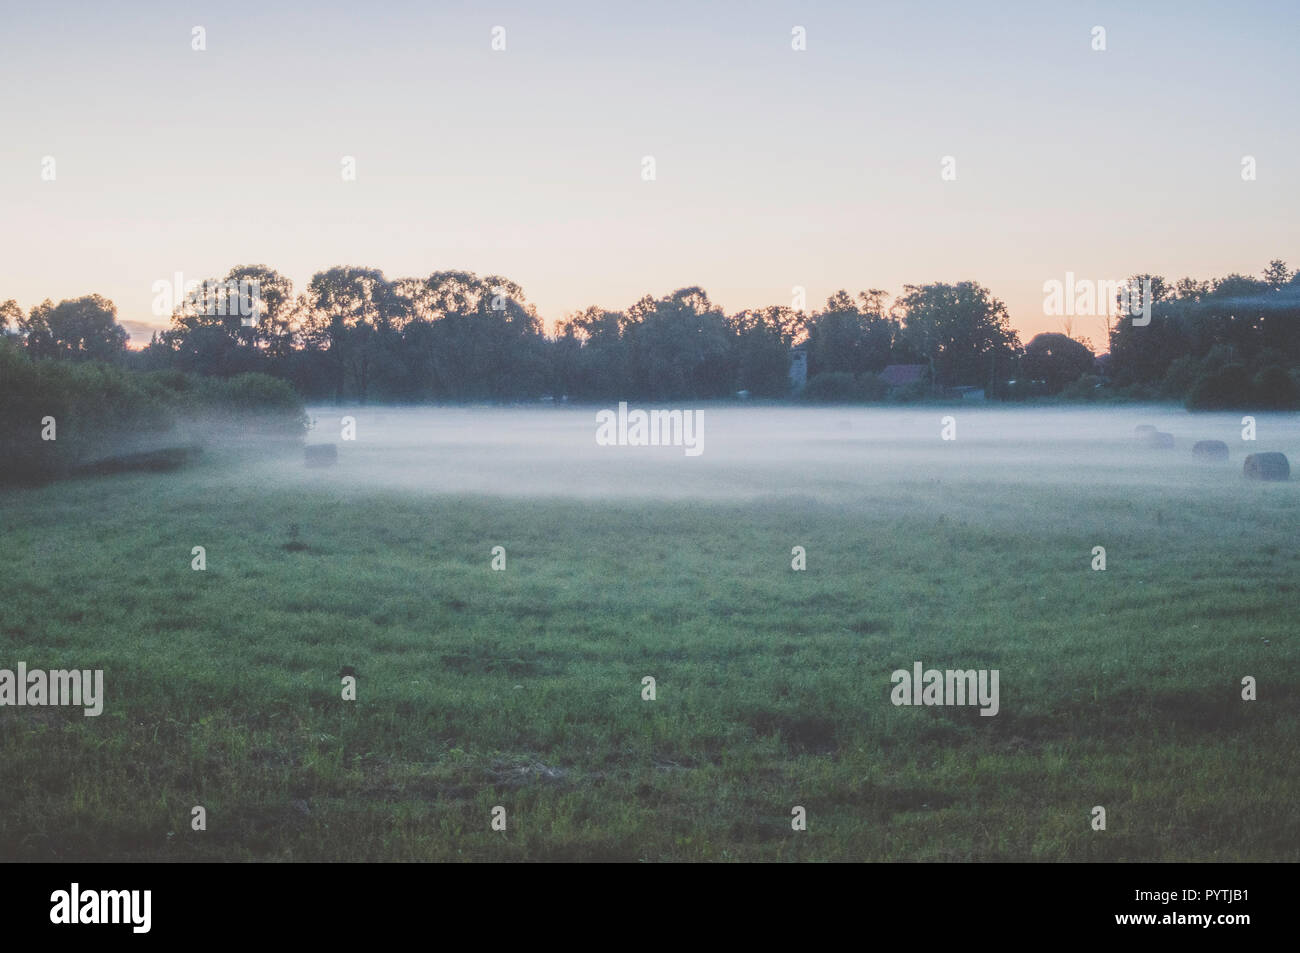 White fog lays over the grass field. Romantic summer evening scene. - Stock Image